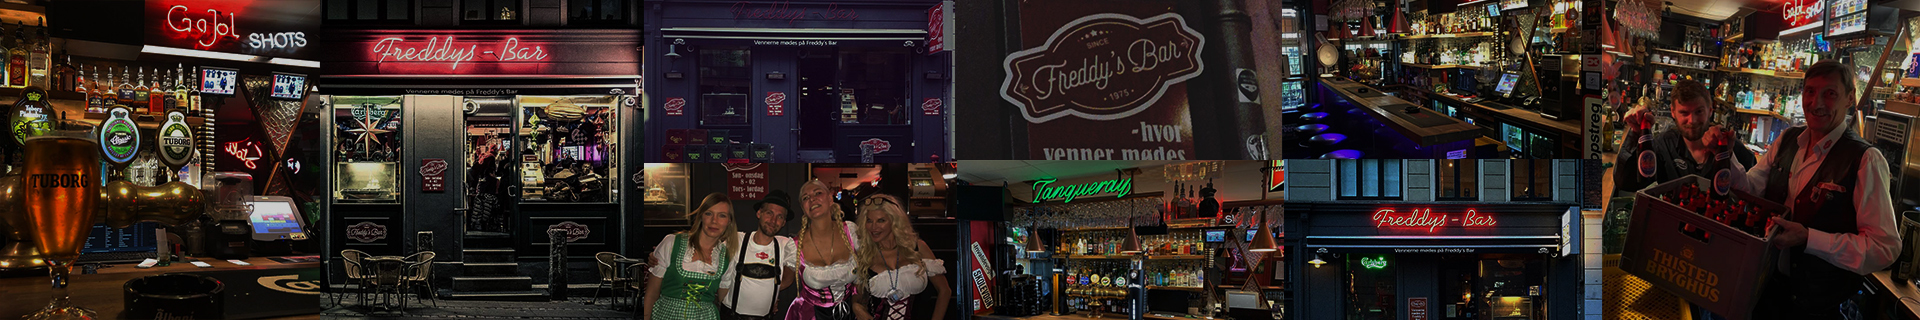 Freddys bar mashup